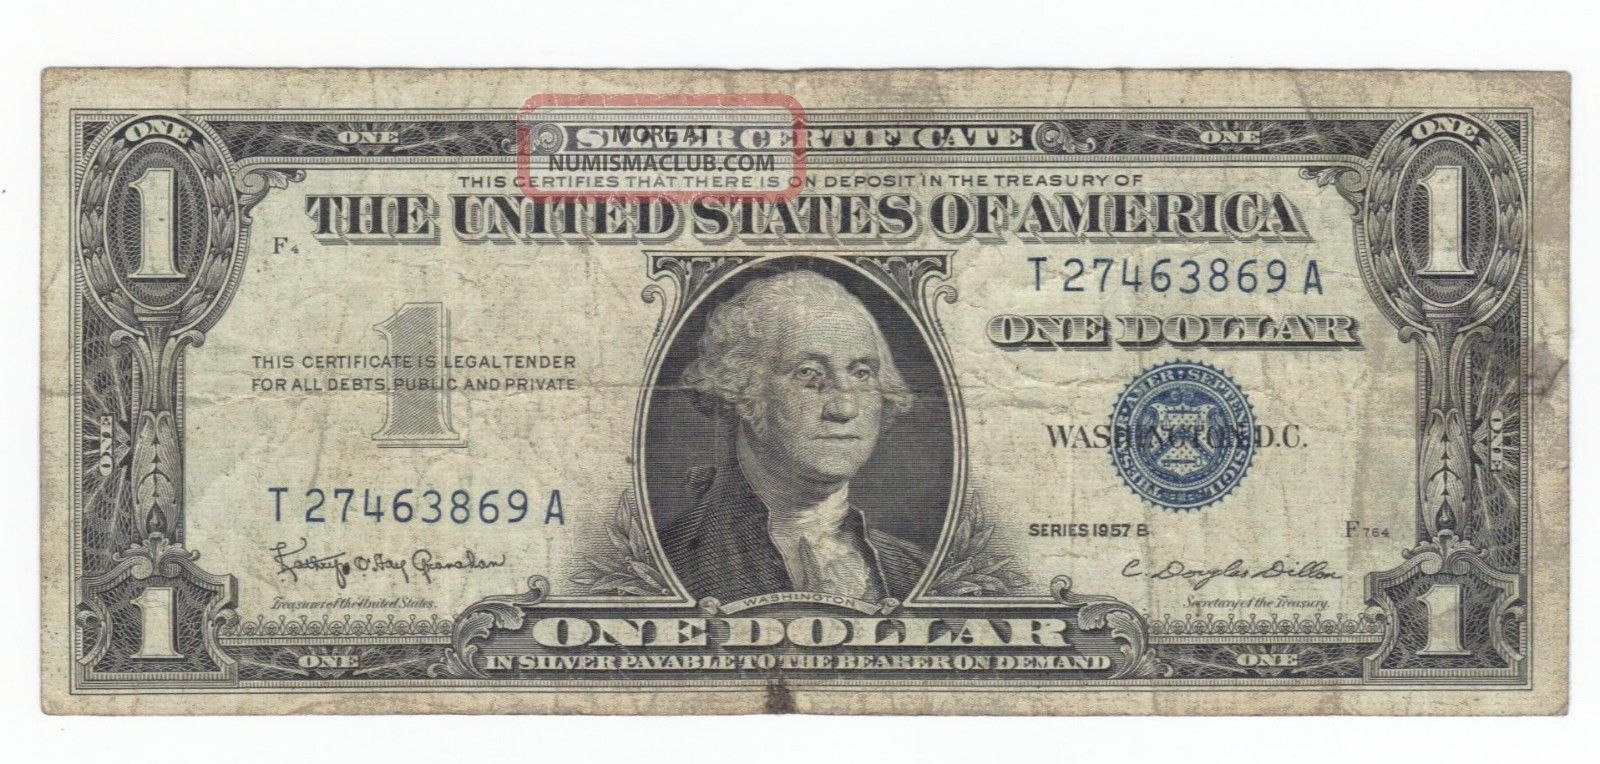 1957b Silver Certificate T27463869a One Dollar 1 00 Bill Blue Seal